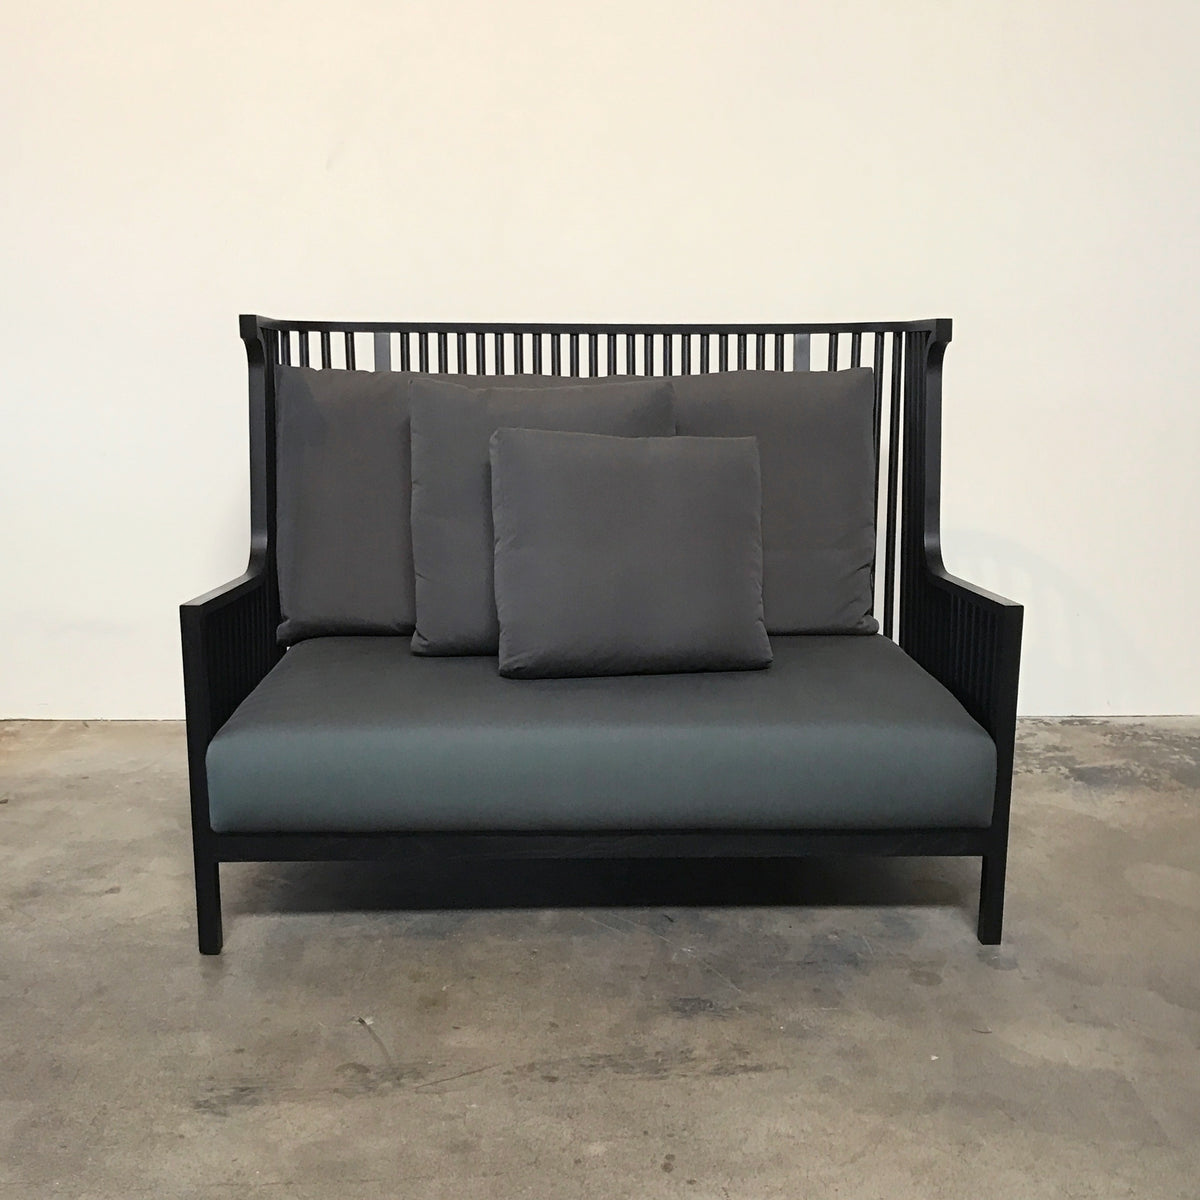 Ligne Roset Elizabeth Teck Outdoor Sofa by Nathan Yong | Los Angeles